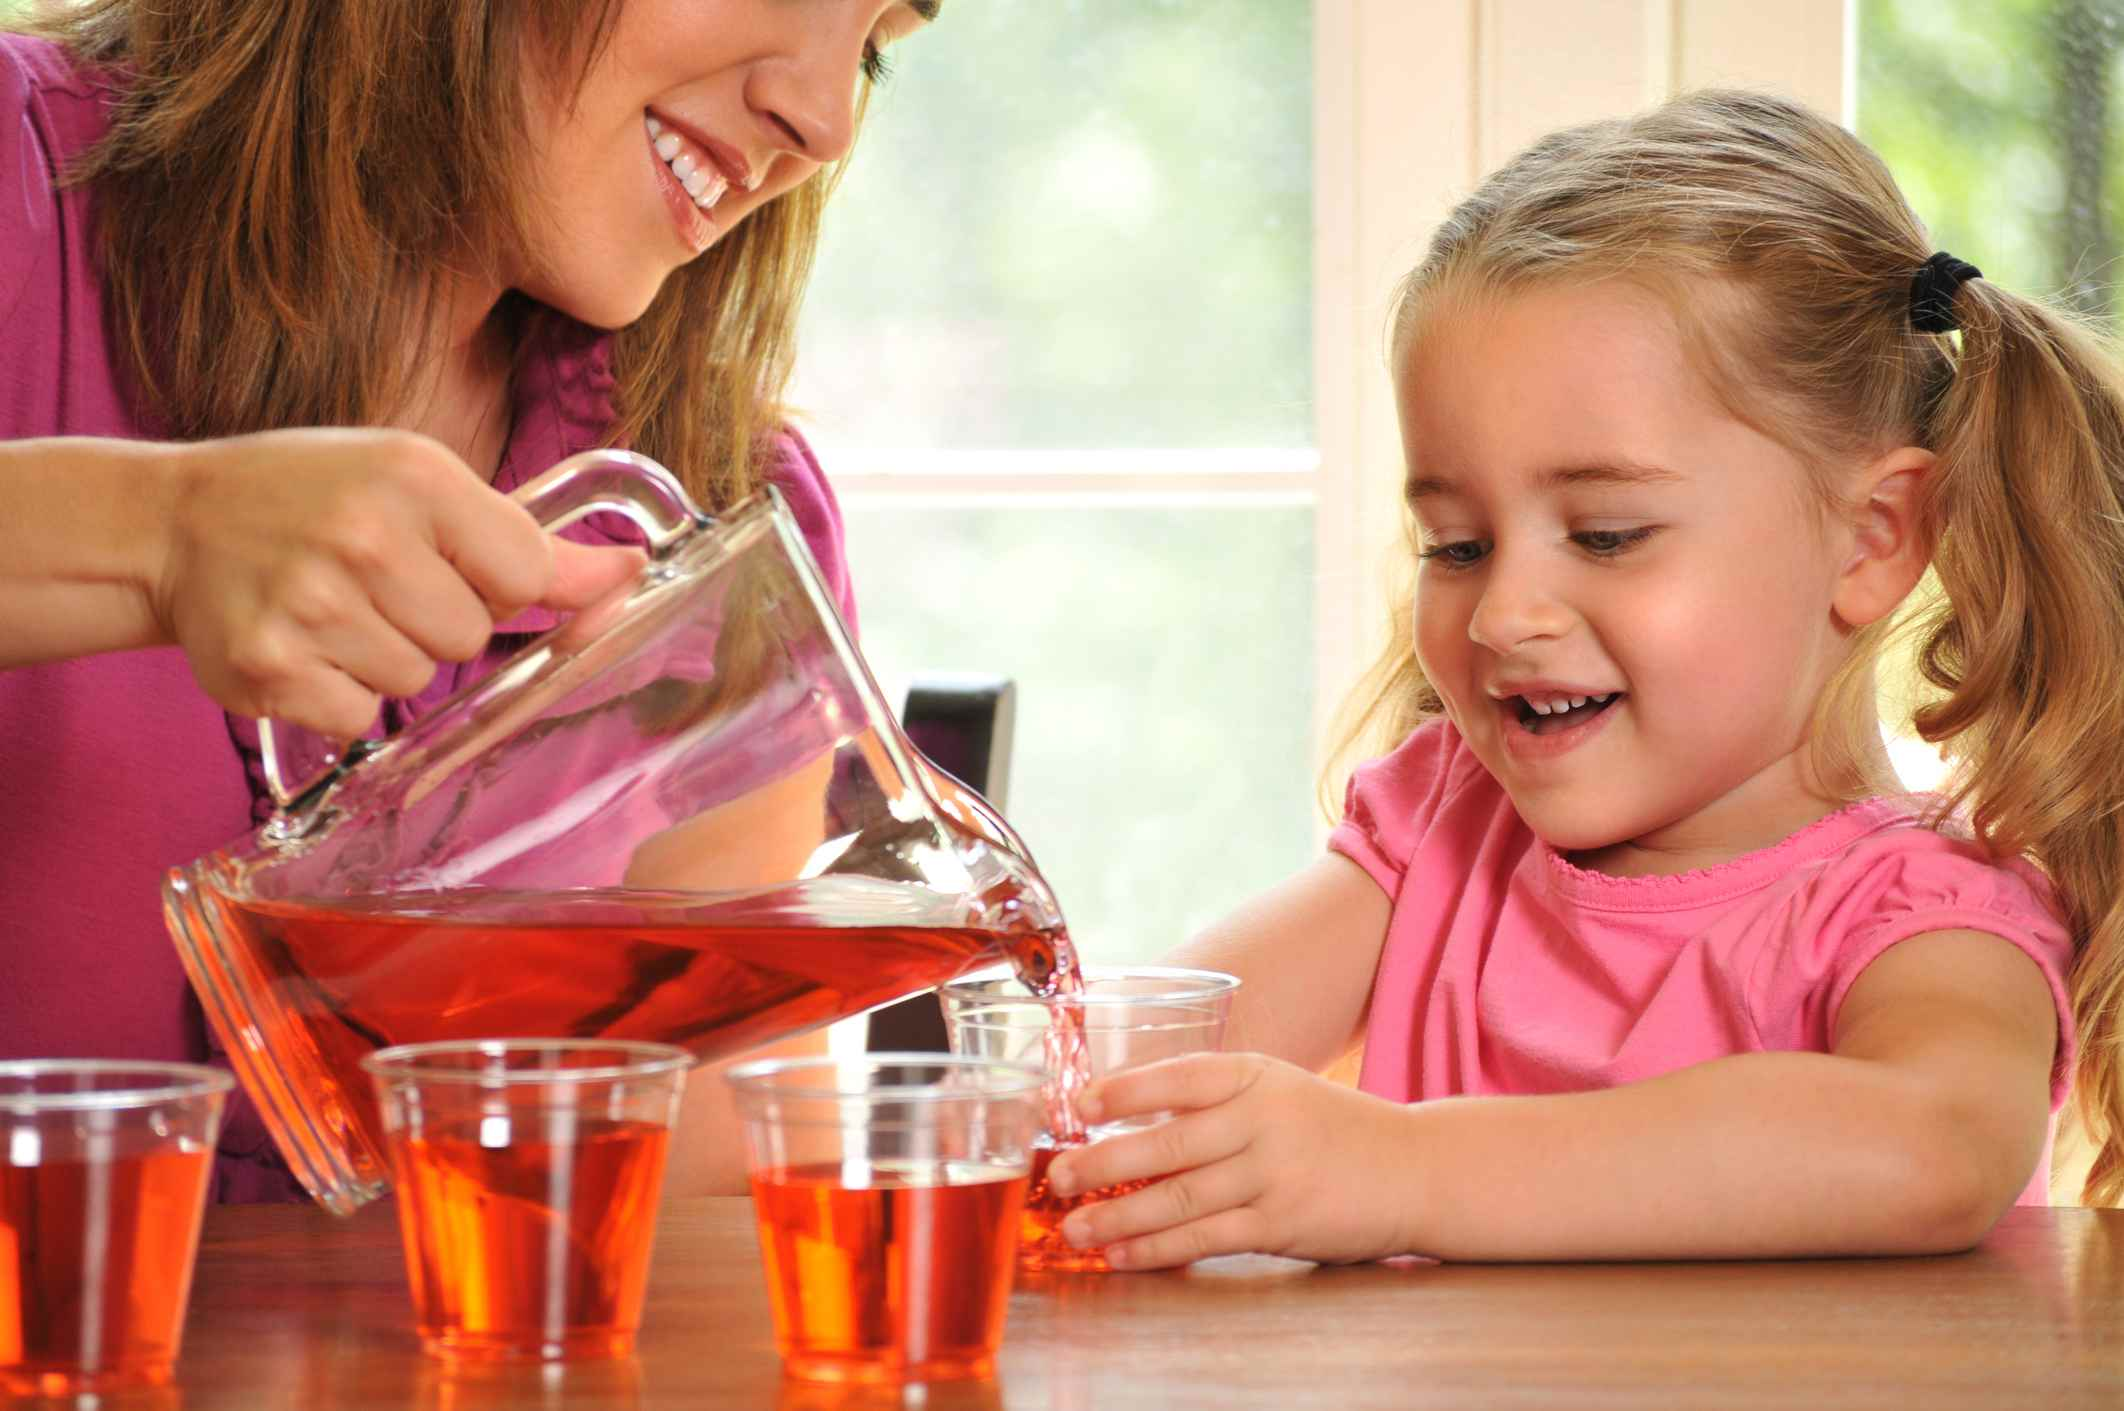 Young Girl Helping her Mother Pour Juice for her Friends